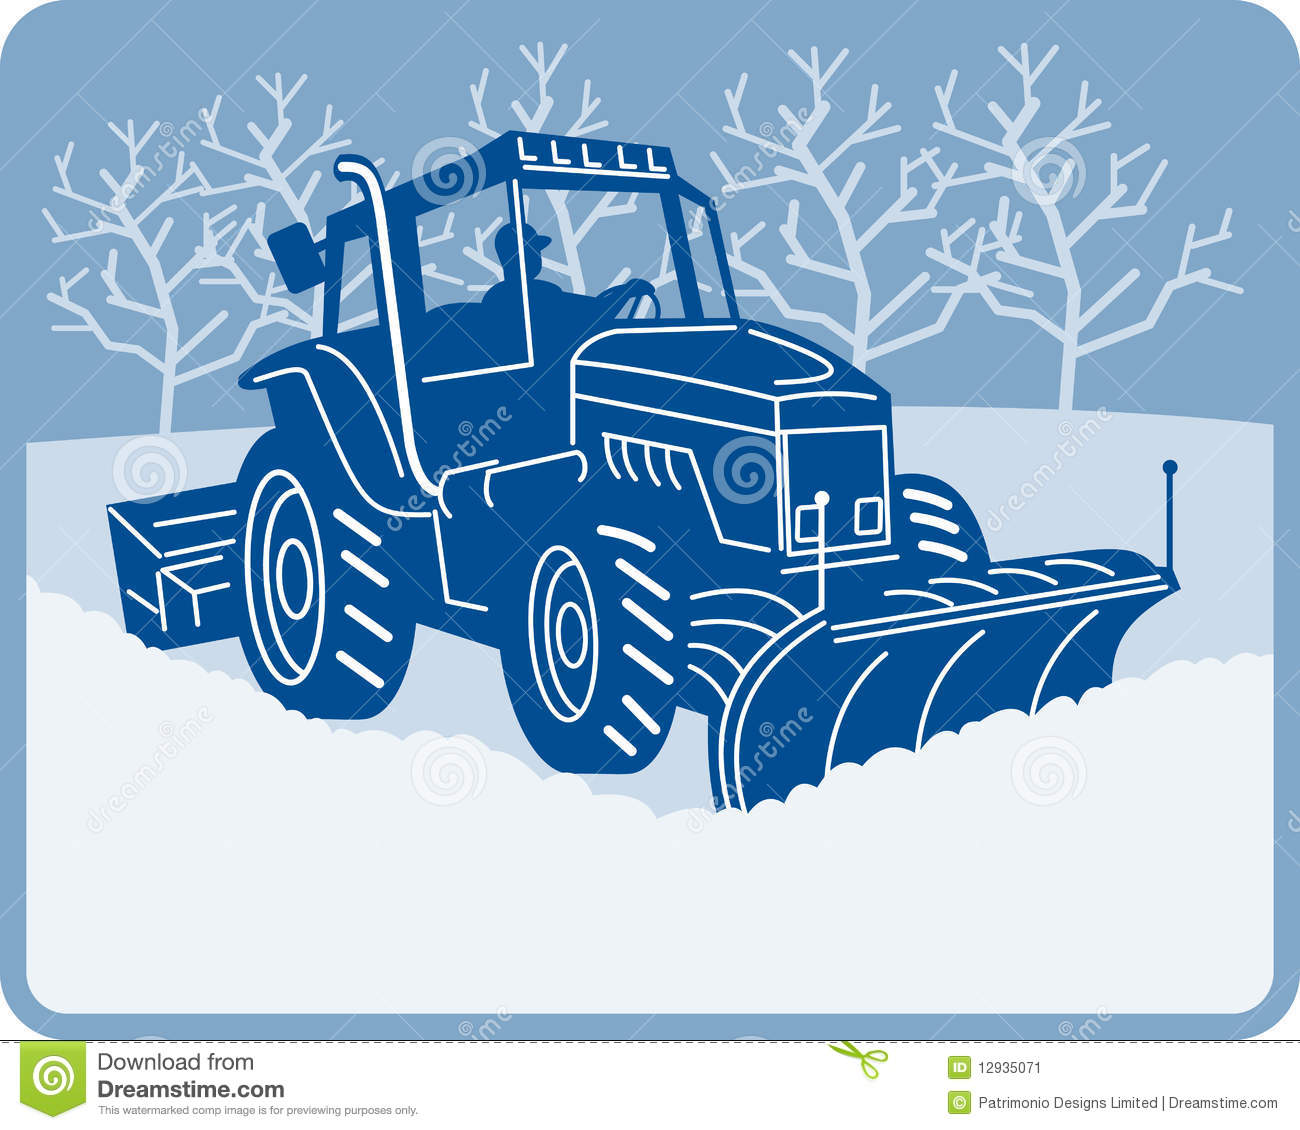 About Snow Plowing Businesses